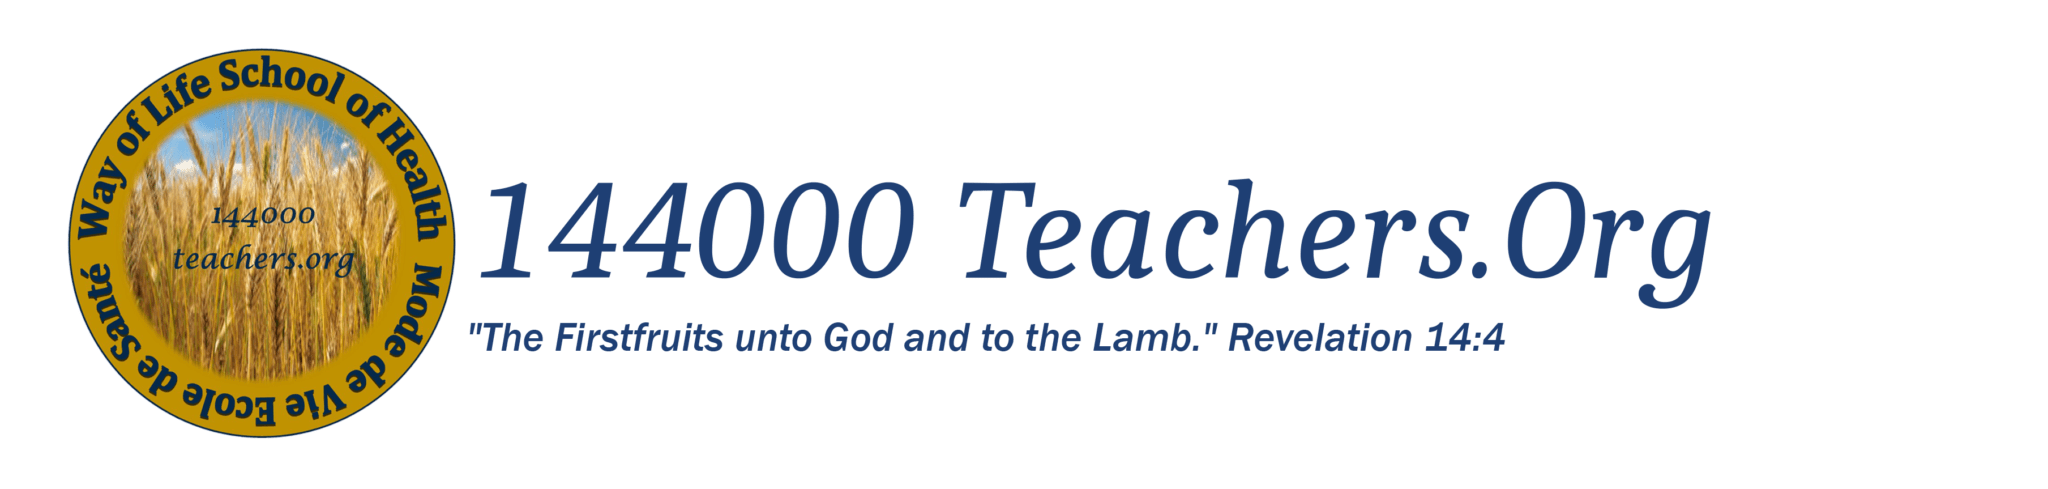 144000 Teachers.Org